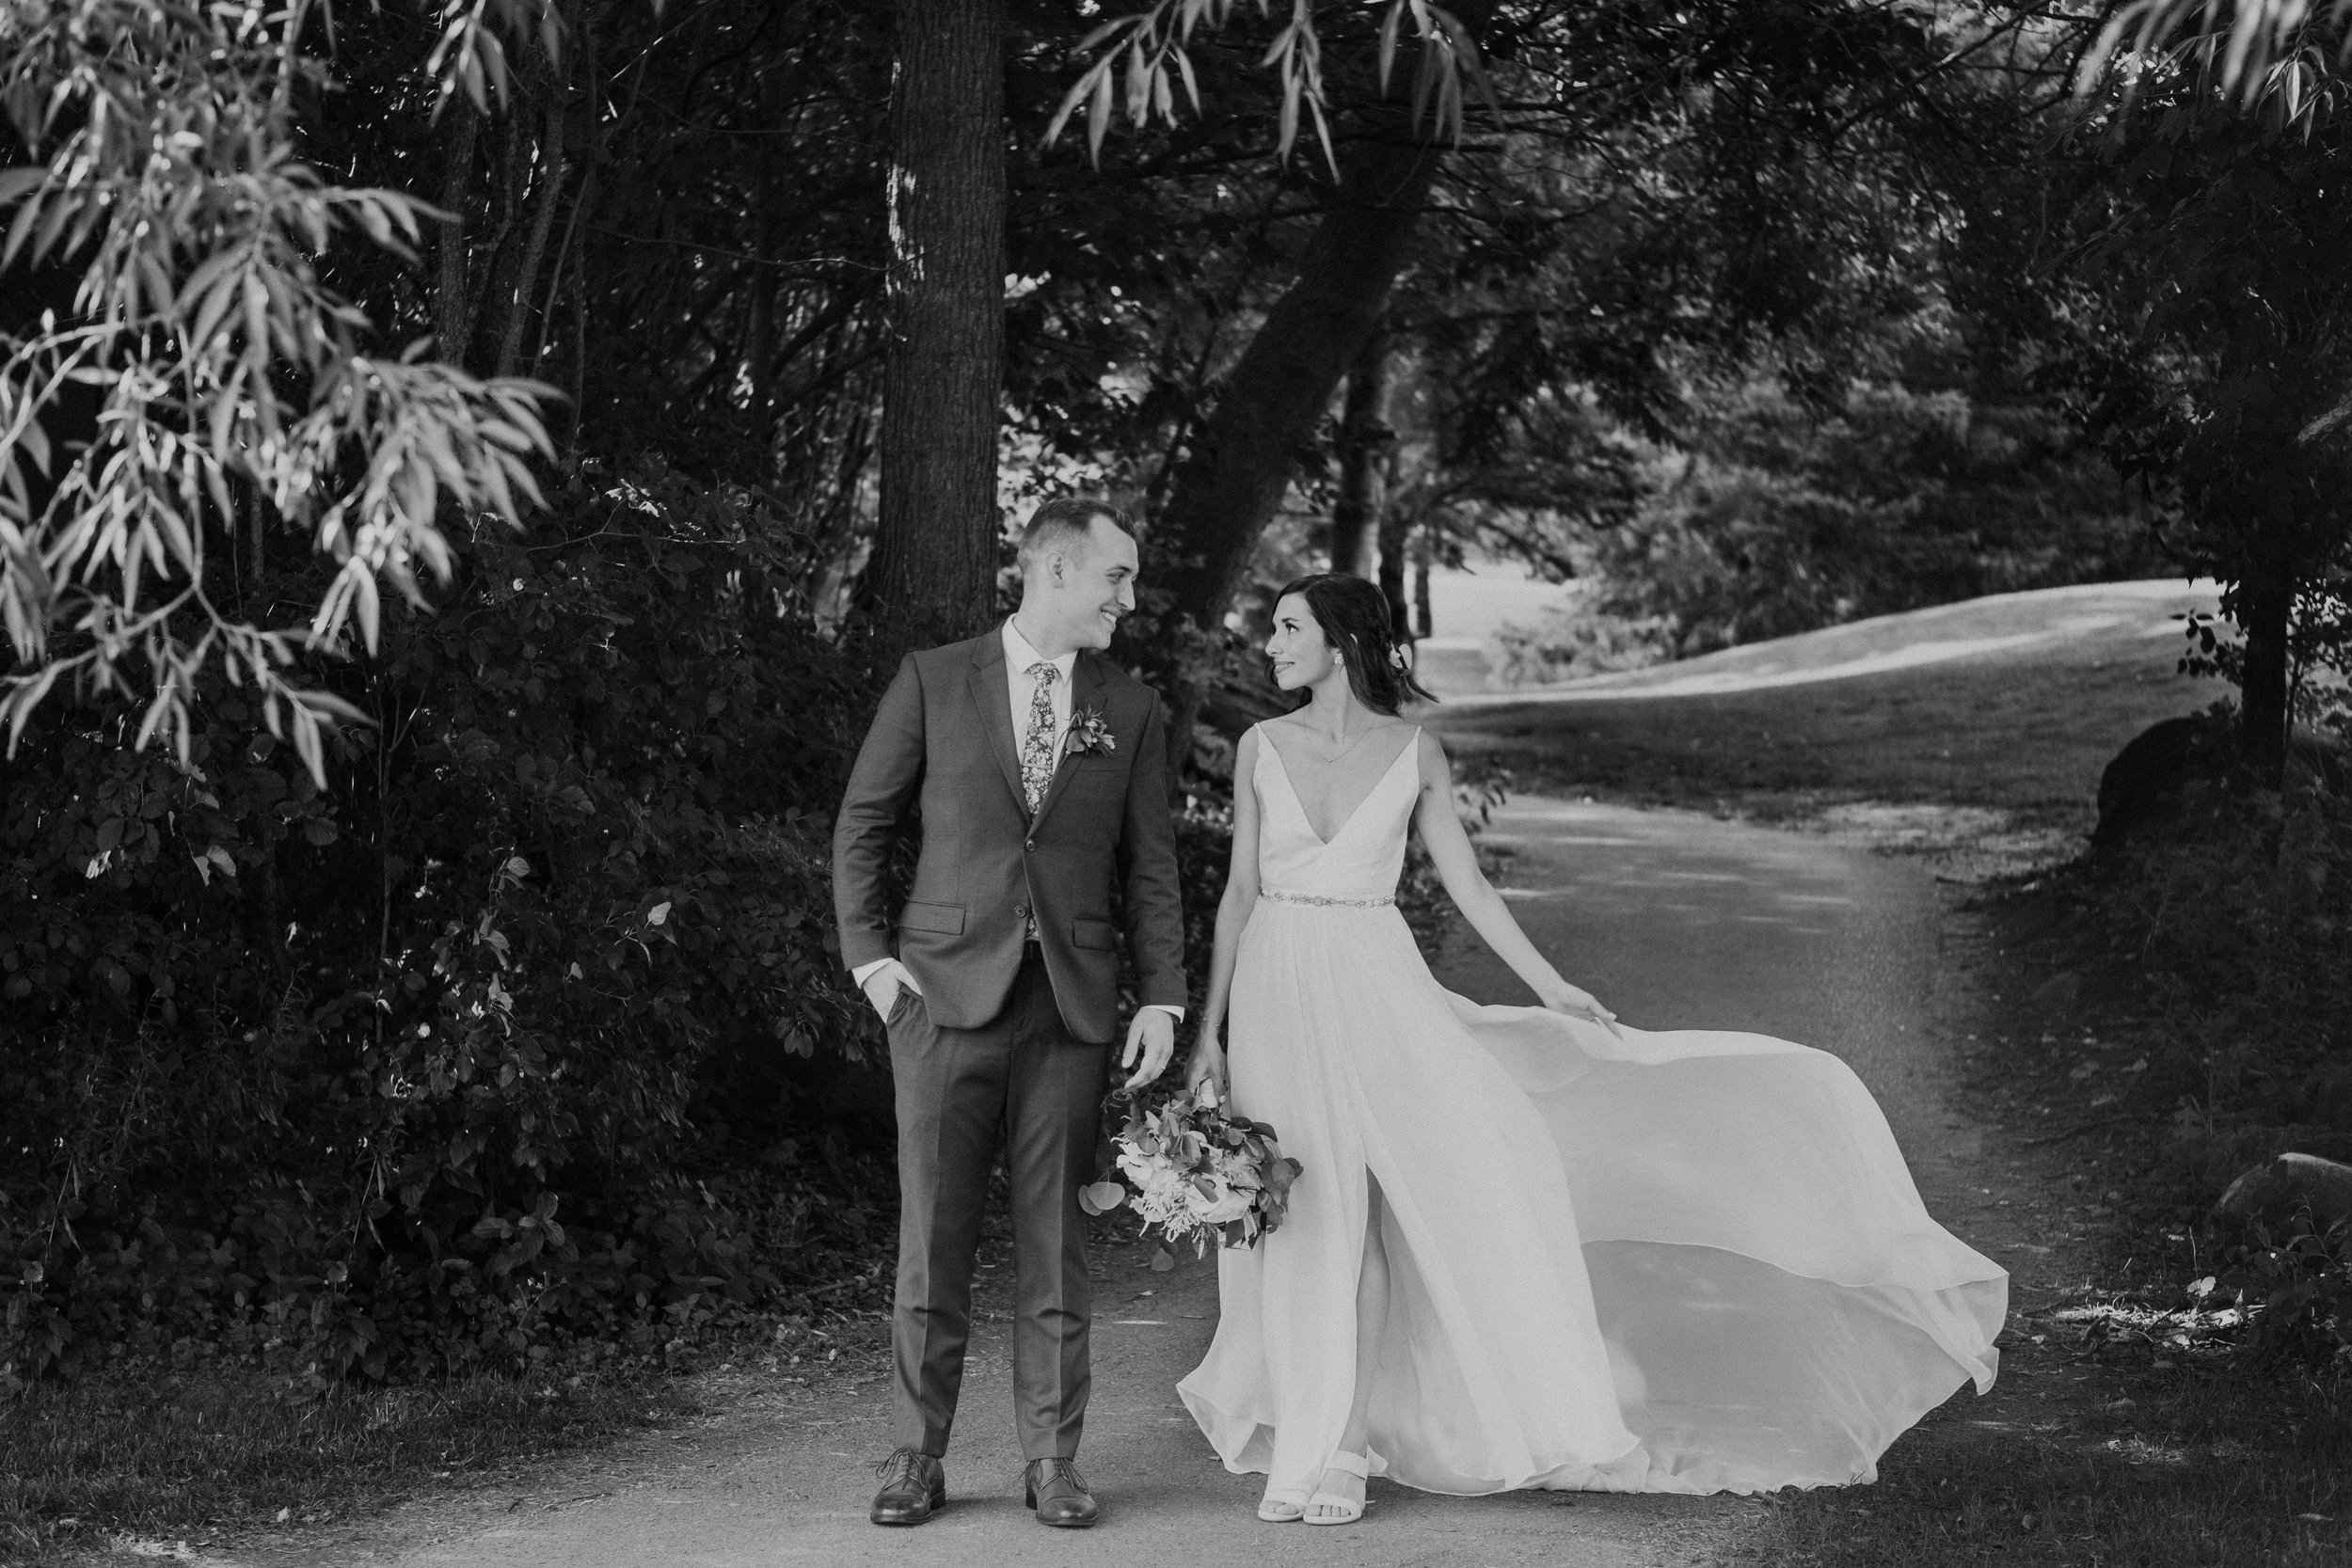 black_and_white_wedding_photography.jpg